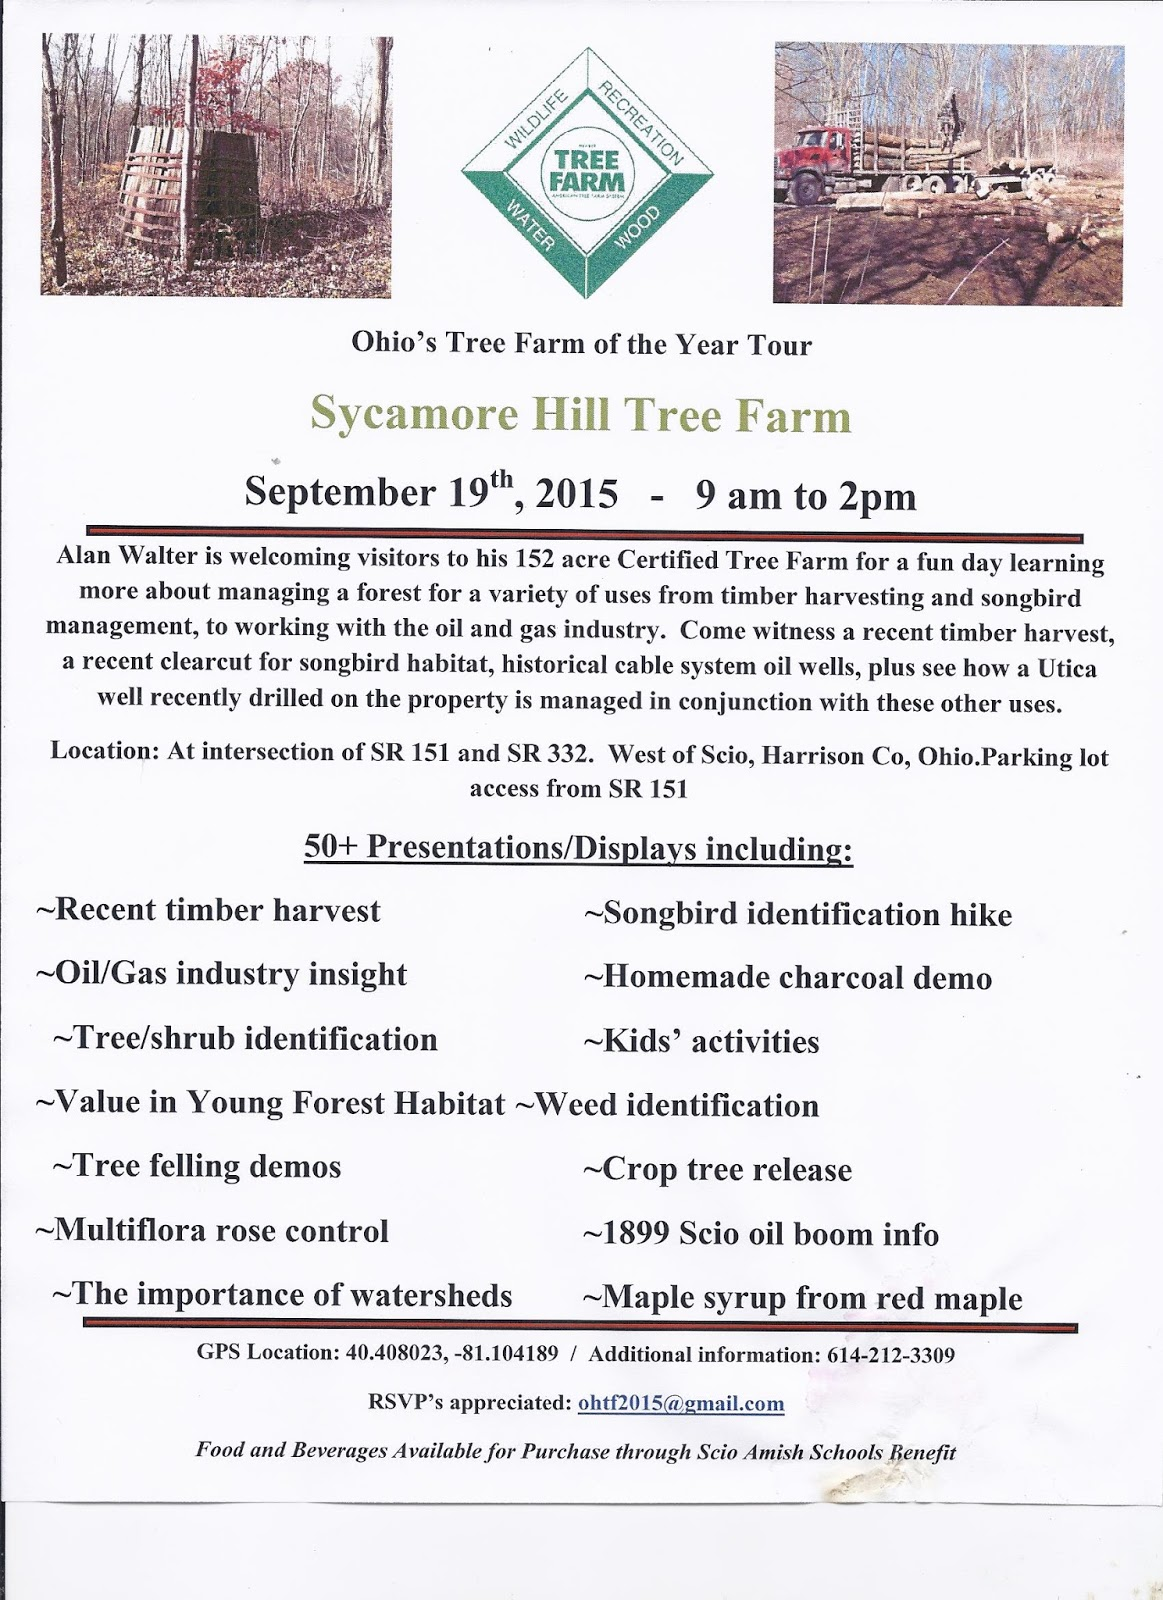 Guernsey soil water conservation district 2015 ohio for Soil tour dates 2015